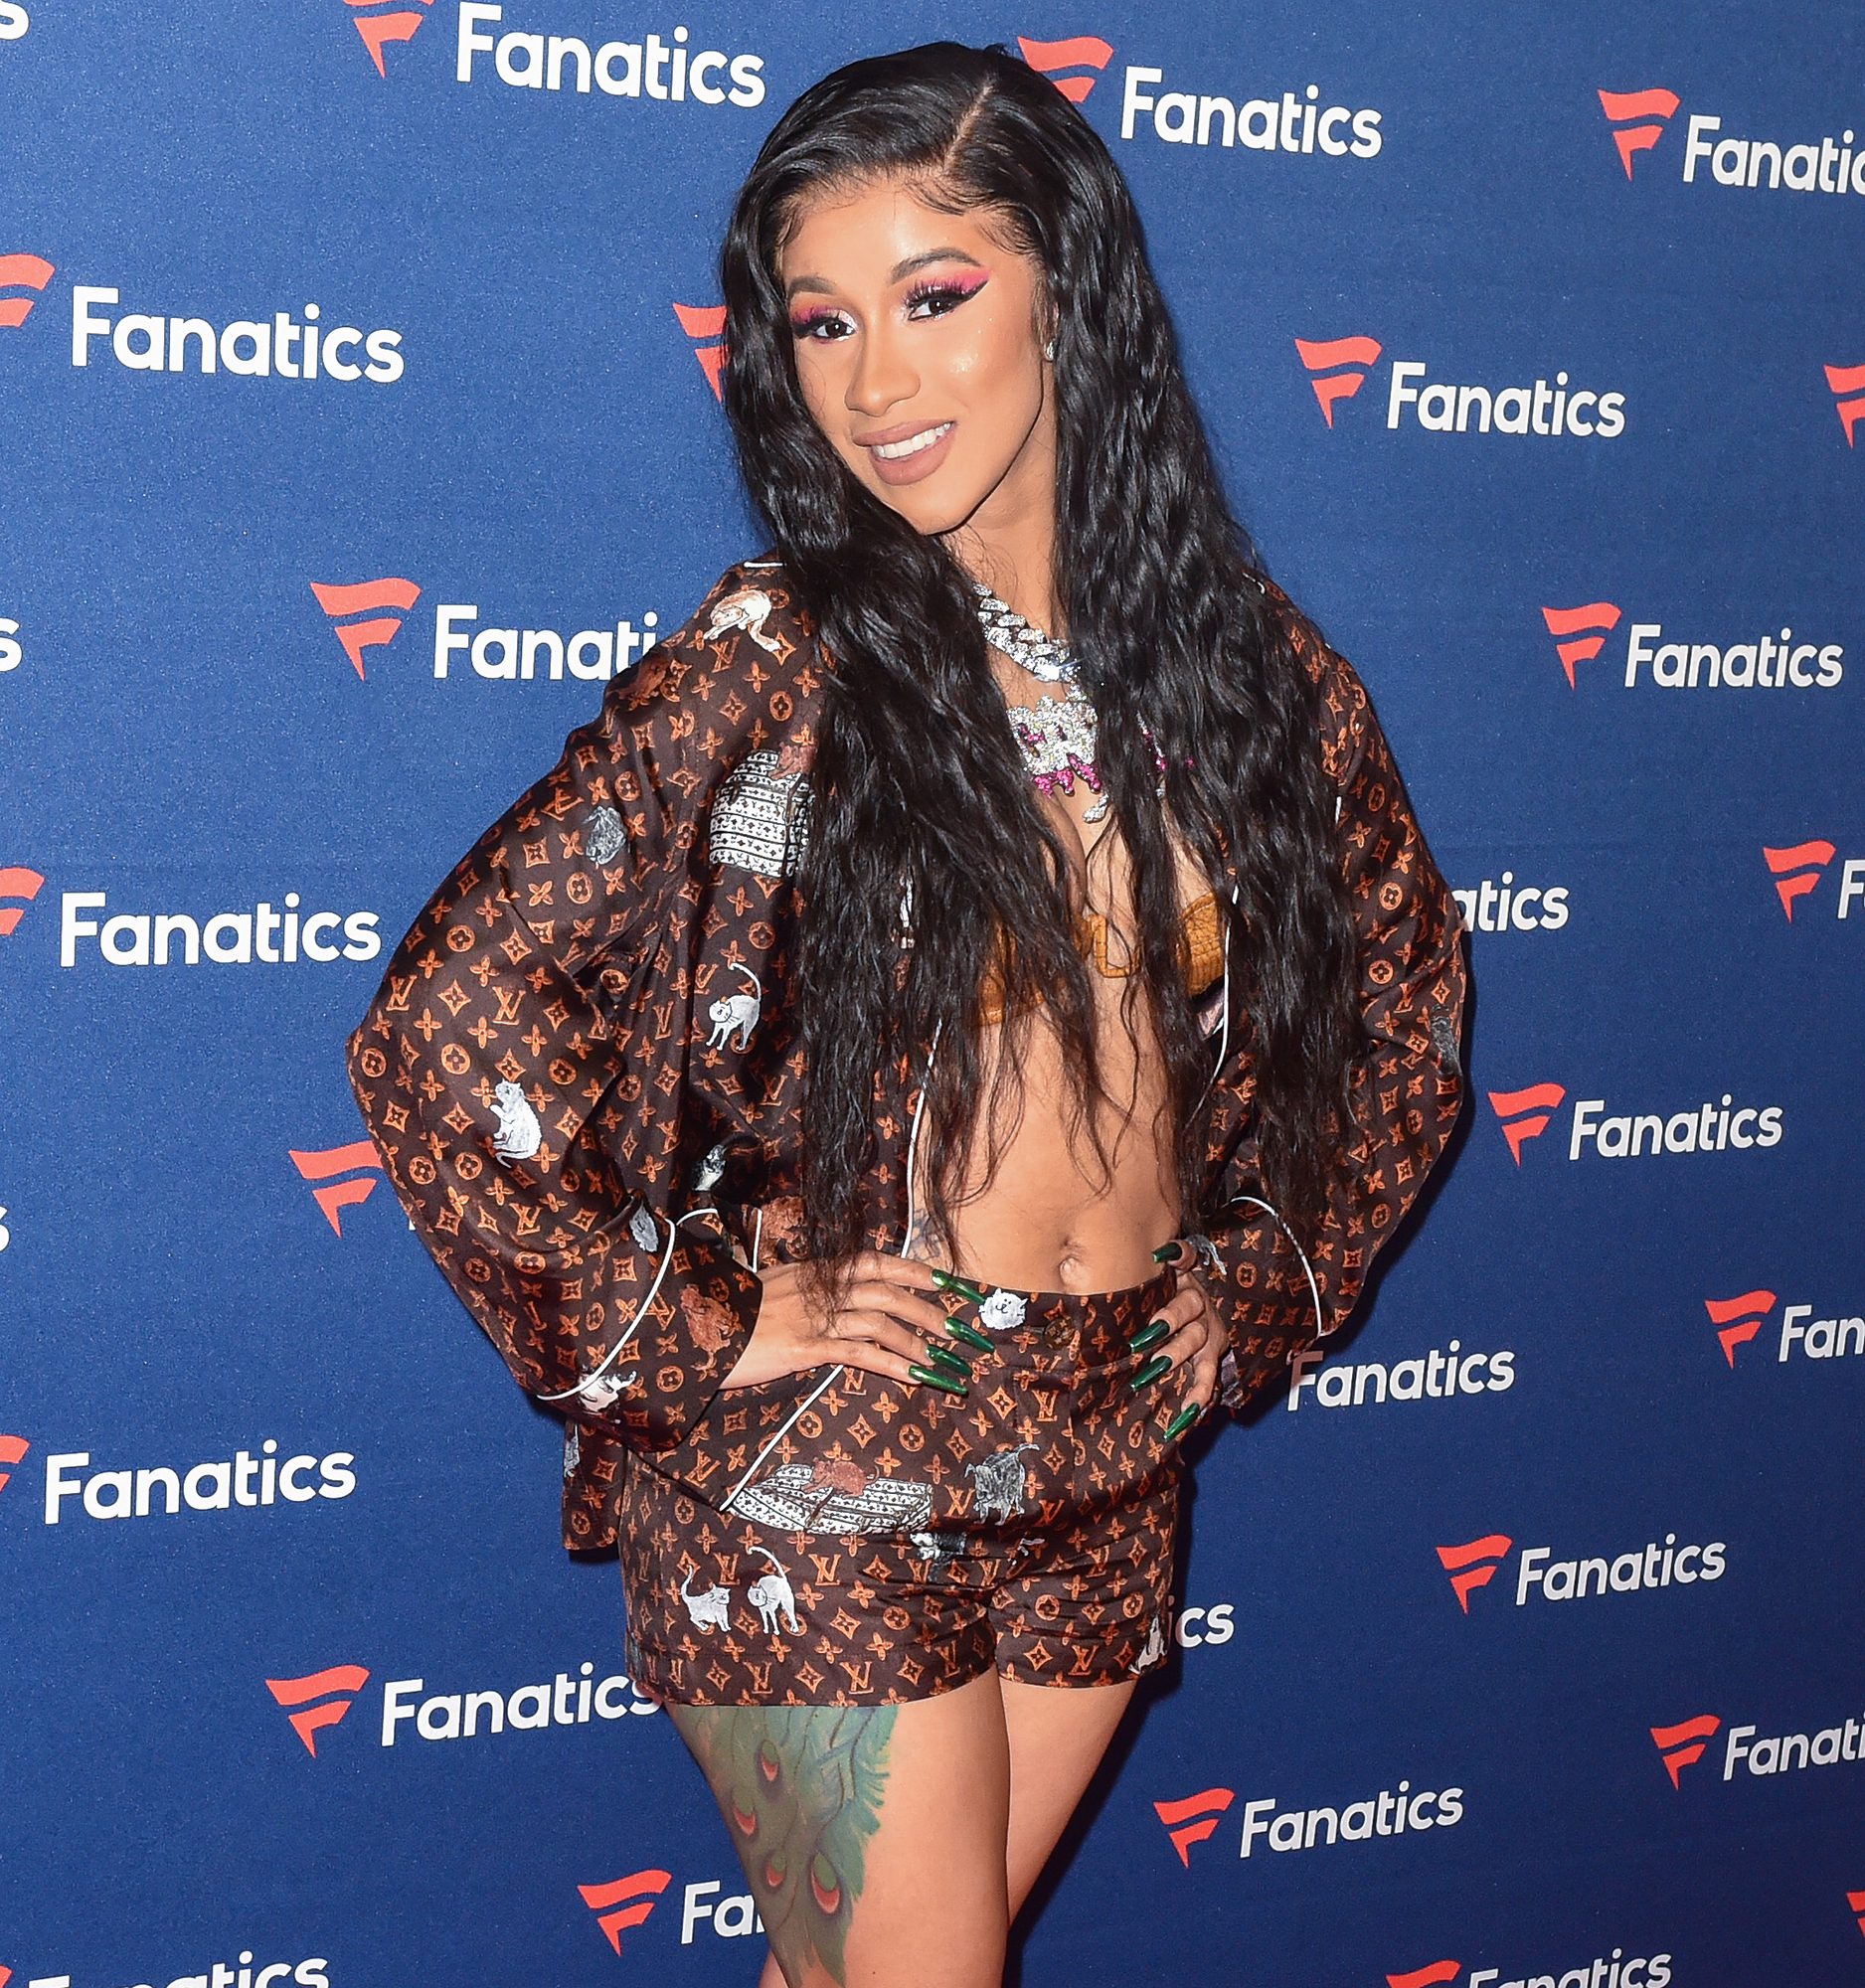 Cardi B Freaks Out When Daughter Kulture Says Mama - Cardi B. arrives to Michael Rubin's Fanatics Super Bowl Party at the College Football Hall of Fame on February 2, 2019 in Atlanta, Georgia.